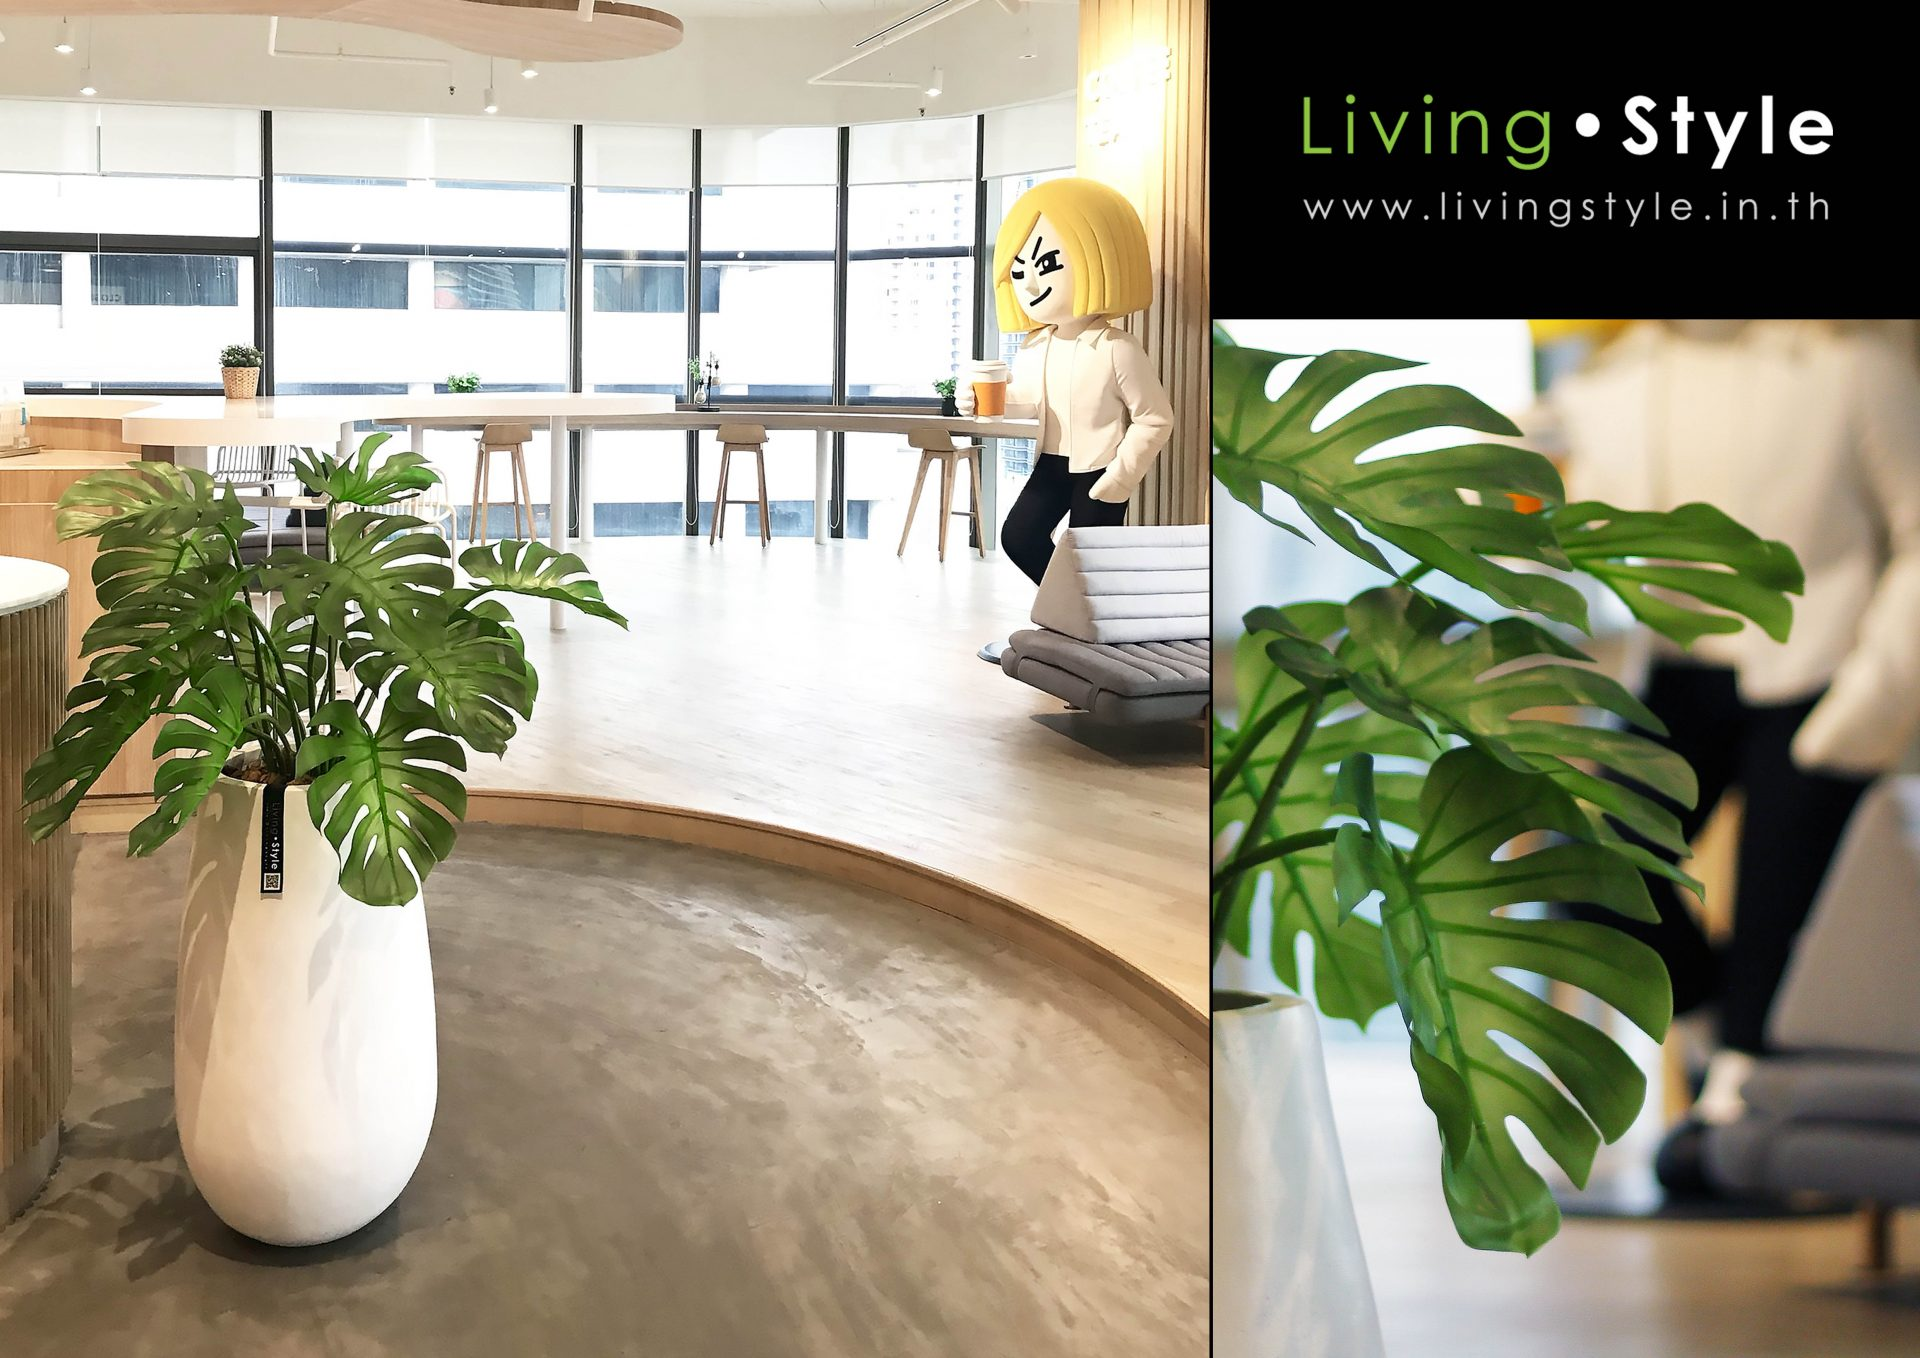 Livingstyle 002 catalog